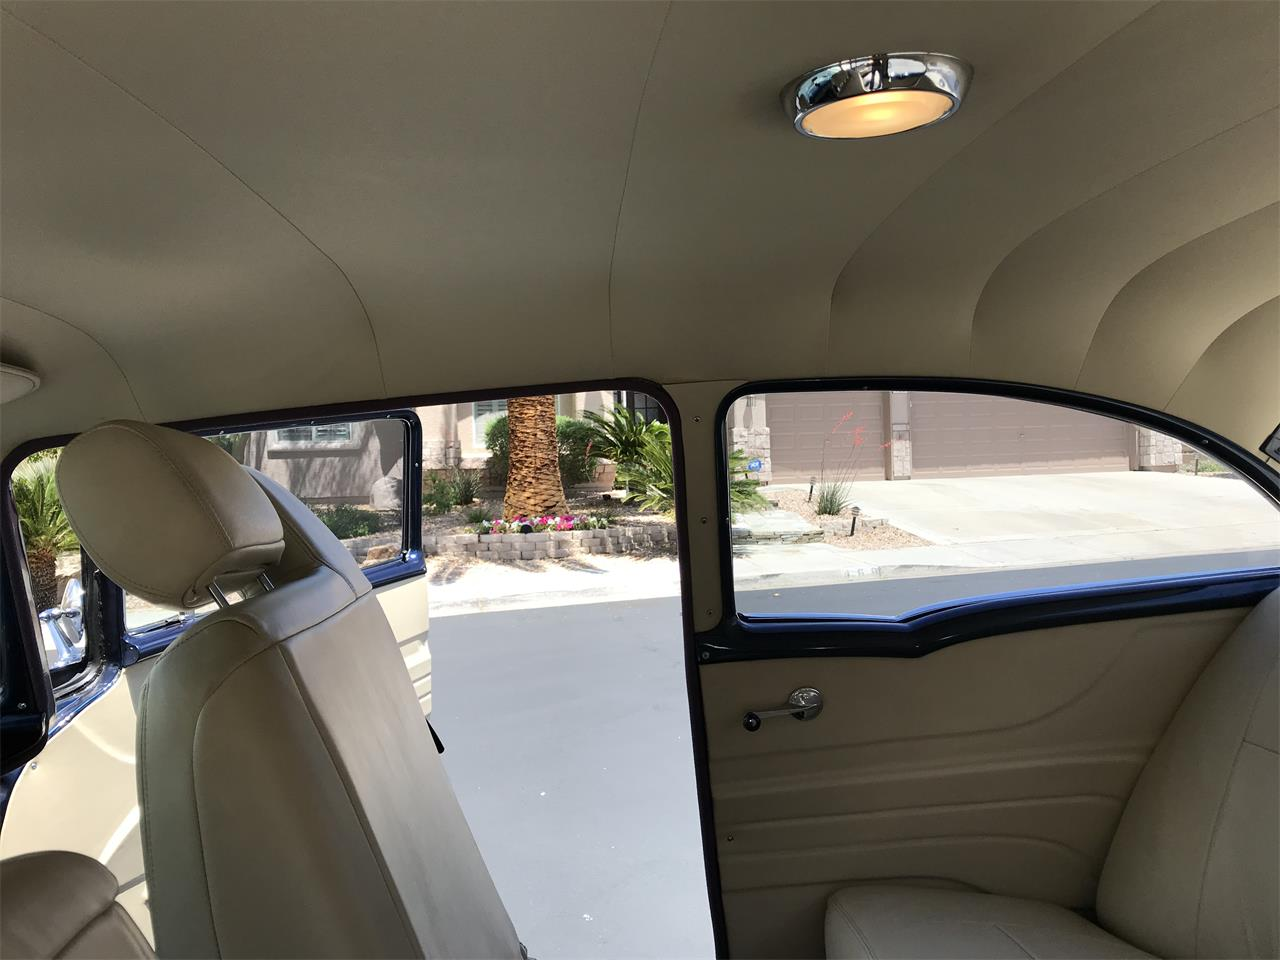 Large Picture of Classic 1955 Bel Air located in HENDERSON Nevada - $55,000.00 Offered by a Private Seller - Q2K1